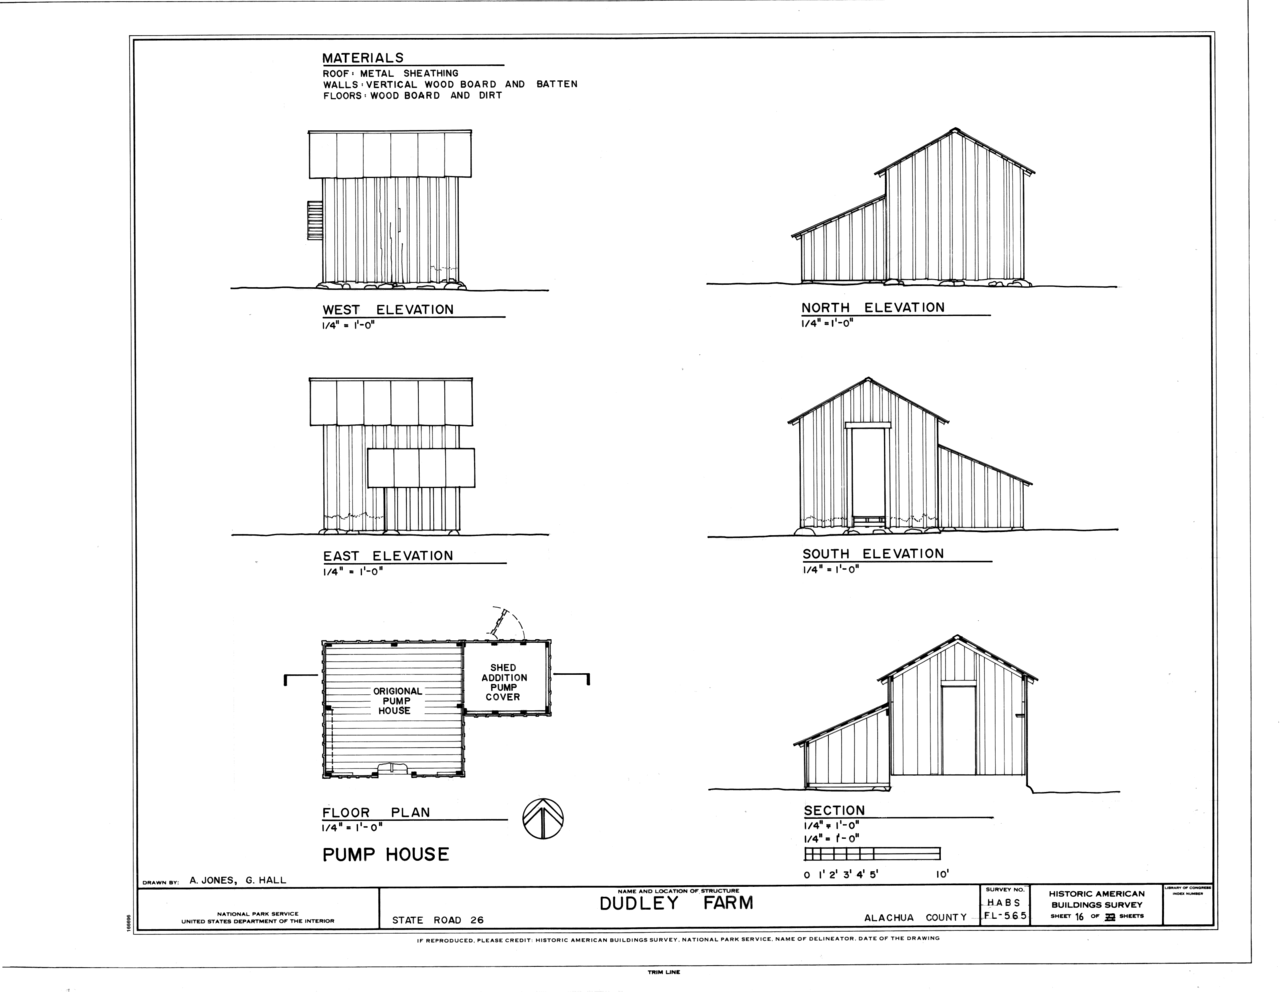 Elevation From Plan : File pump house elevations floor plan and section